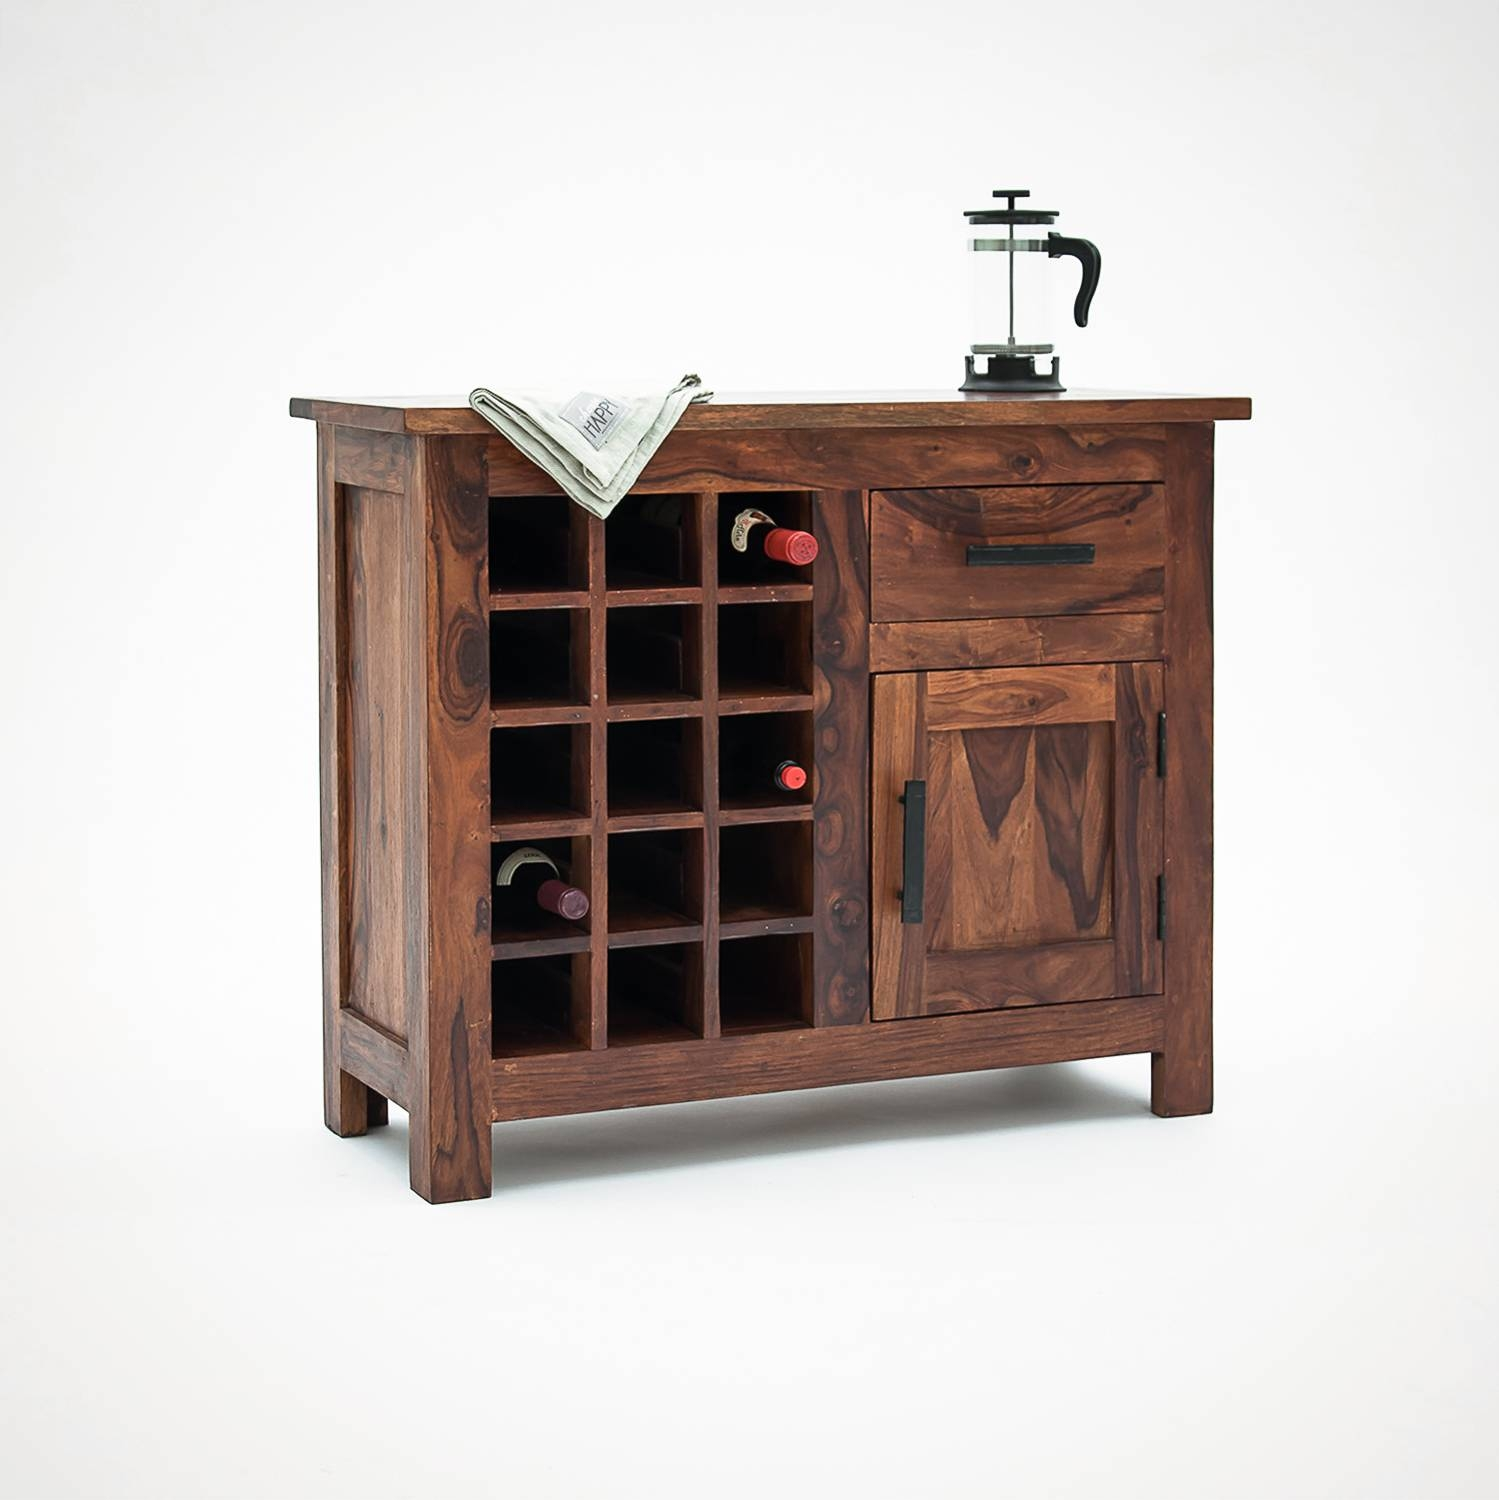 Oak Sideboards With Wine Rack | Mpfmpf Almirah, Beds pertaining to Sideboards With Wine Racks (Image 14 of 30)